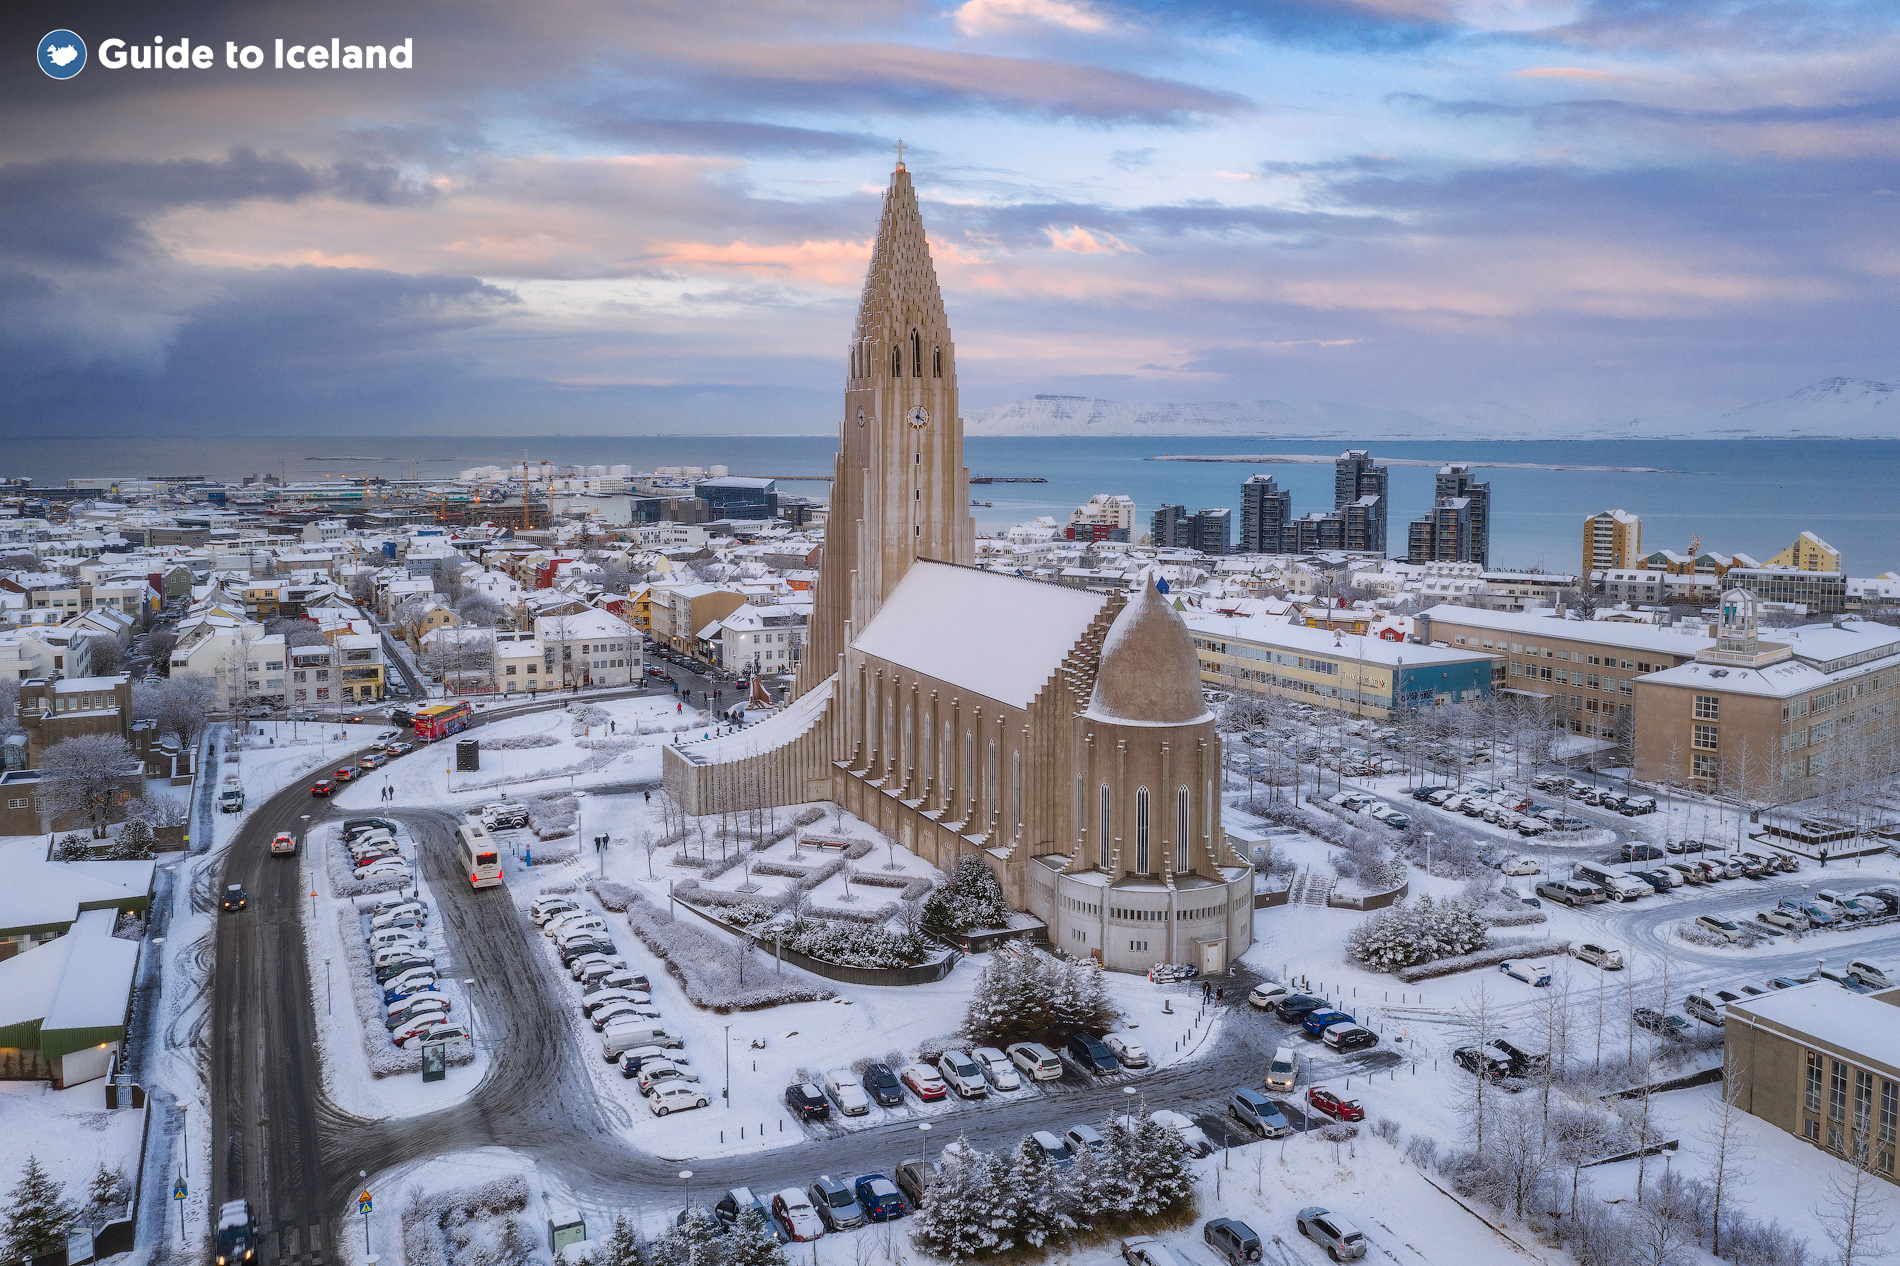 5 Day Northern Lights Winter Vacation with the Golden Circle, South Coast, Reykjavik & Blue Lagoon - day 4